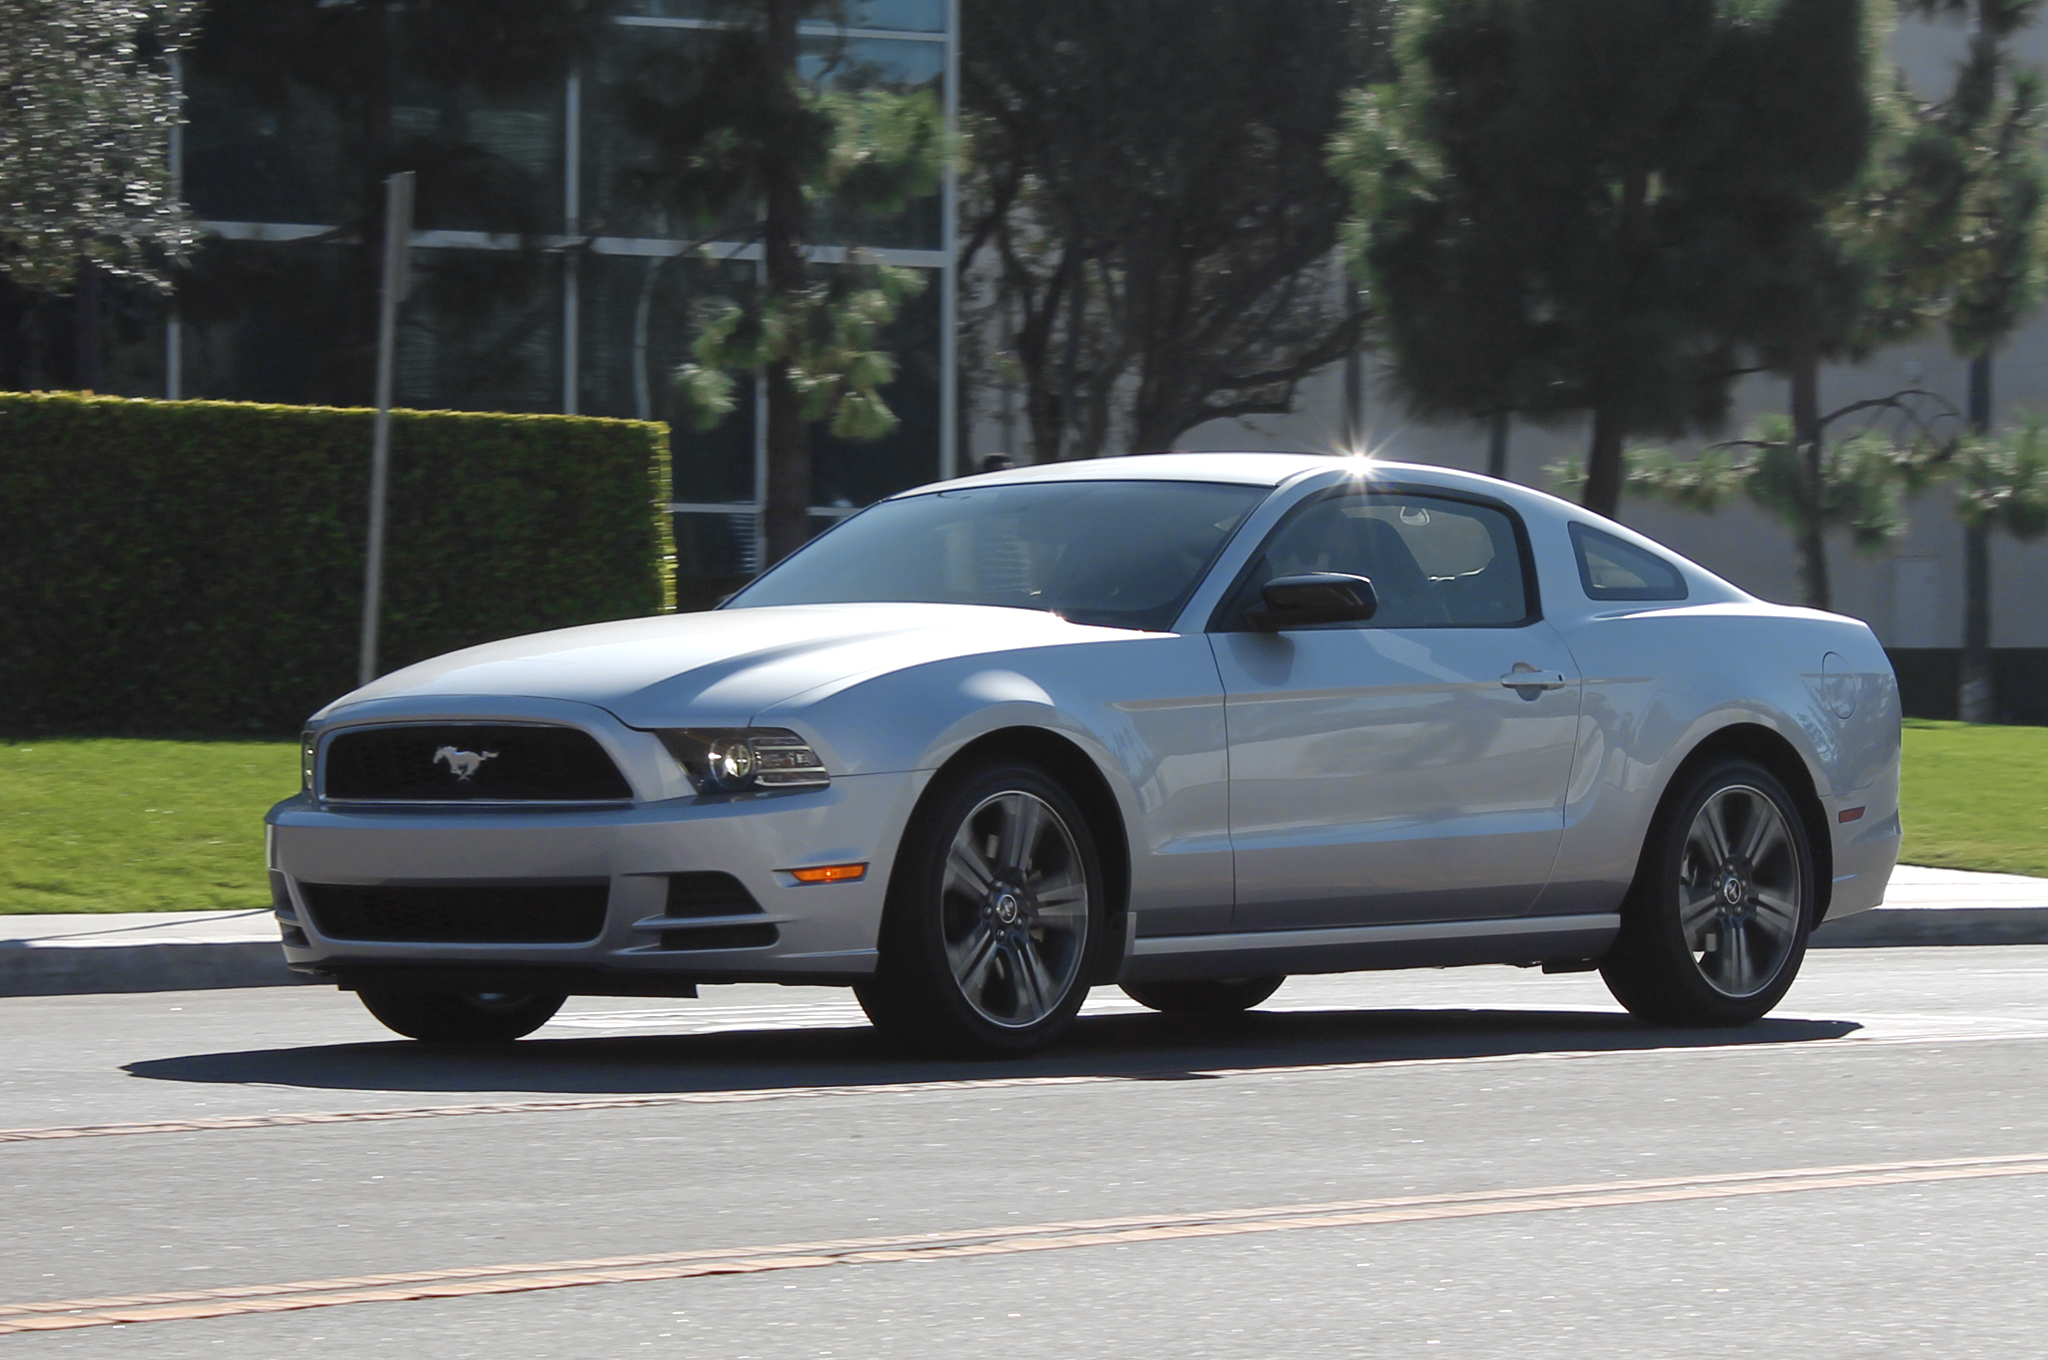 2014 Ford Mustang Gt Quarter Mile